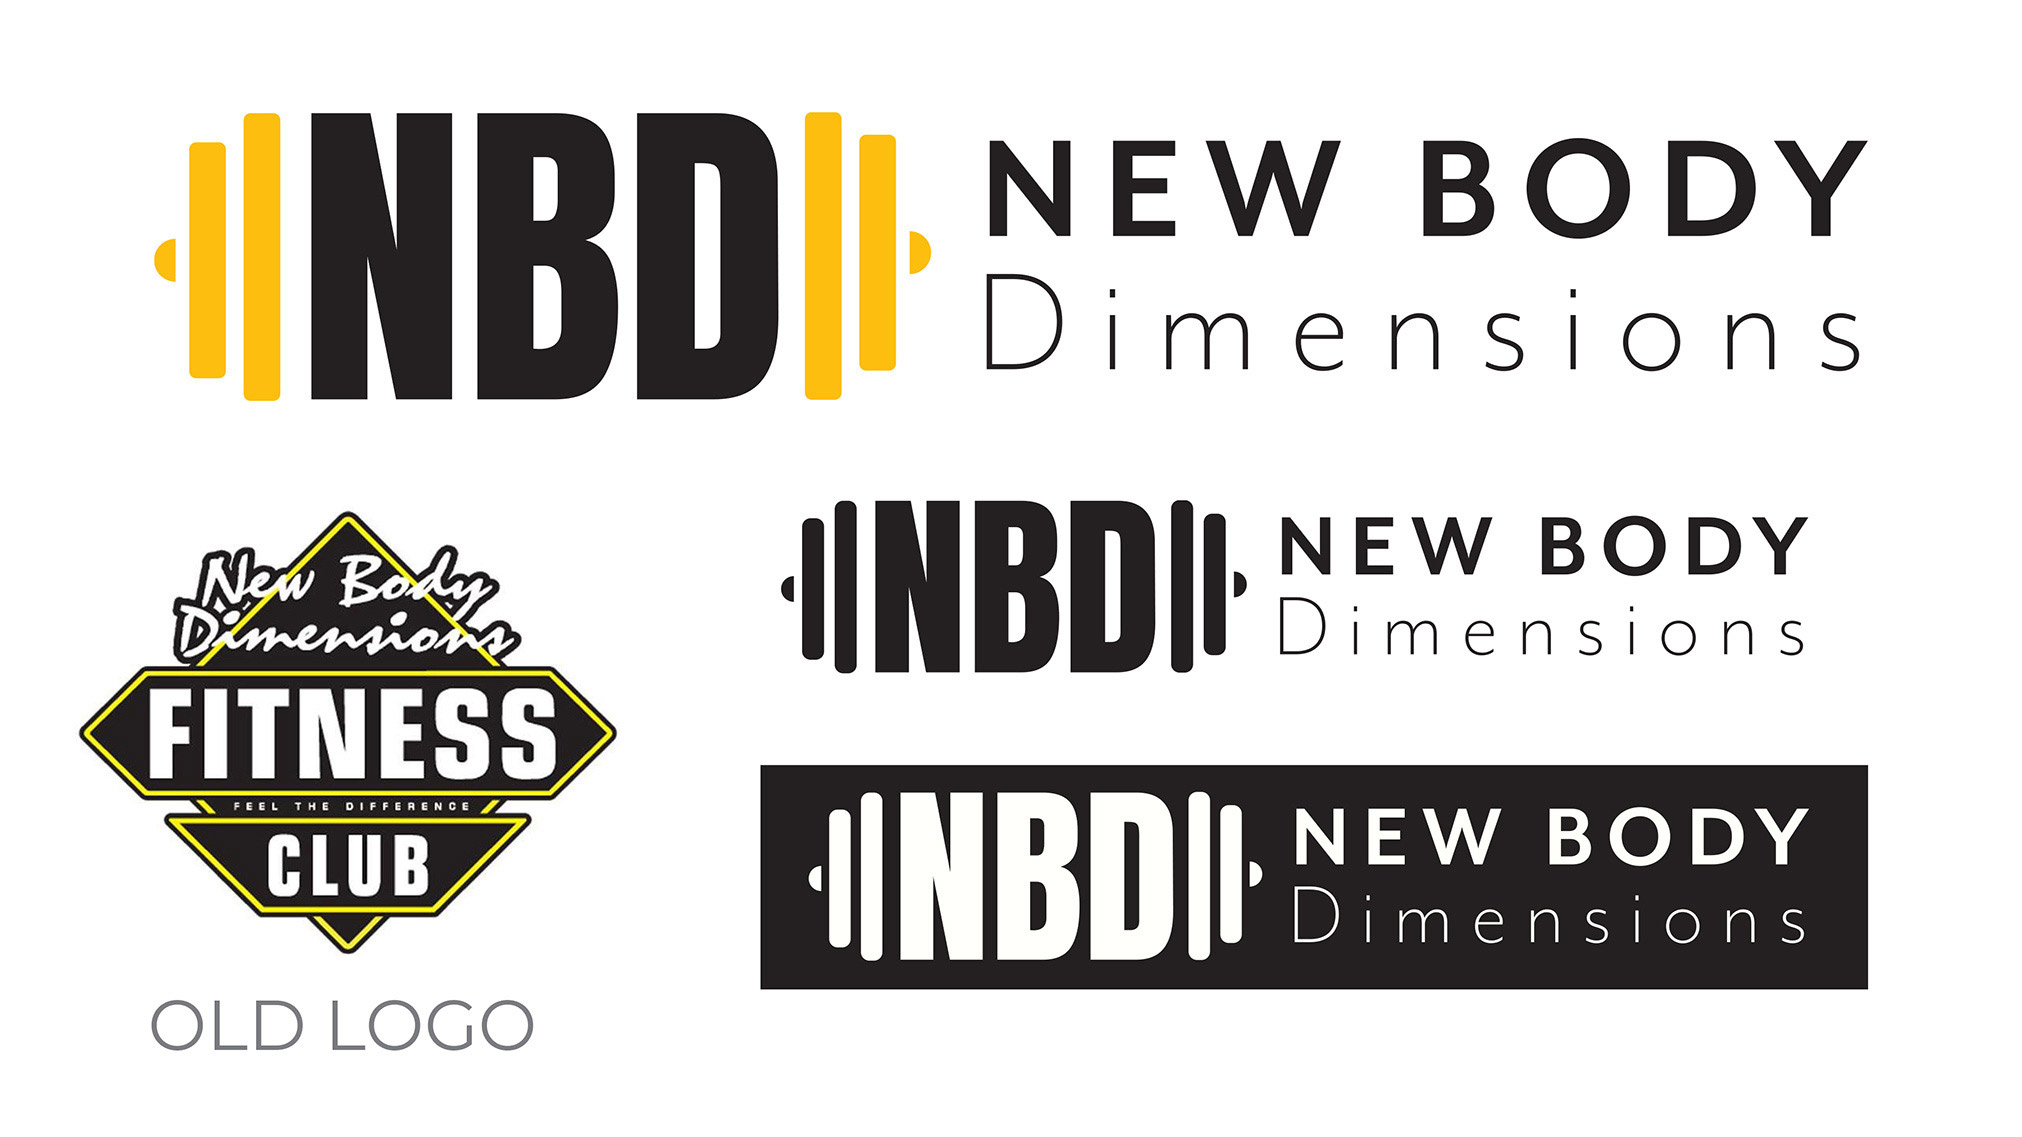 New Body Dimensions Fitness Club that is located in Ottawa and was established in 1998. Their current logo is outdated and busy. I decided to create a more minimalistic logo that the audience will understand that is a gym and not something else.